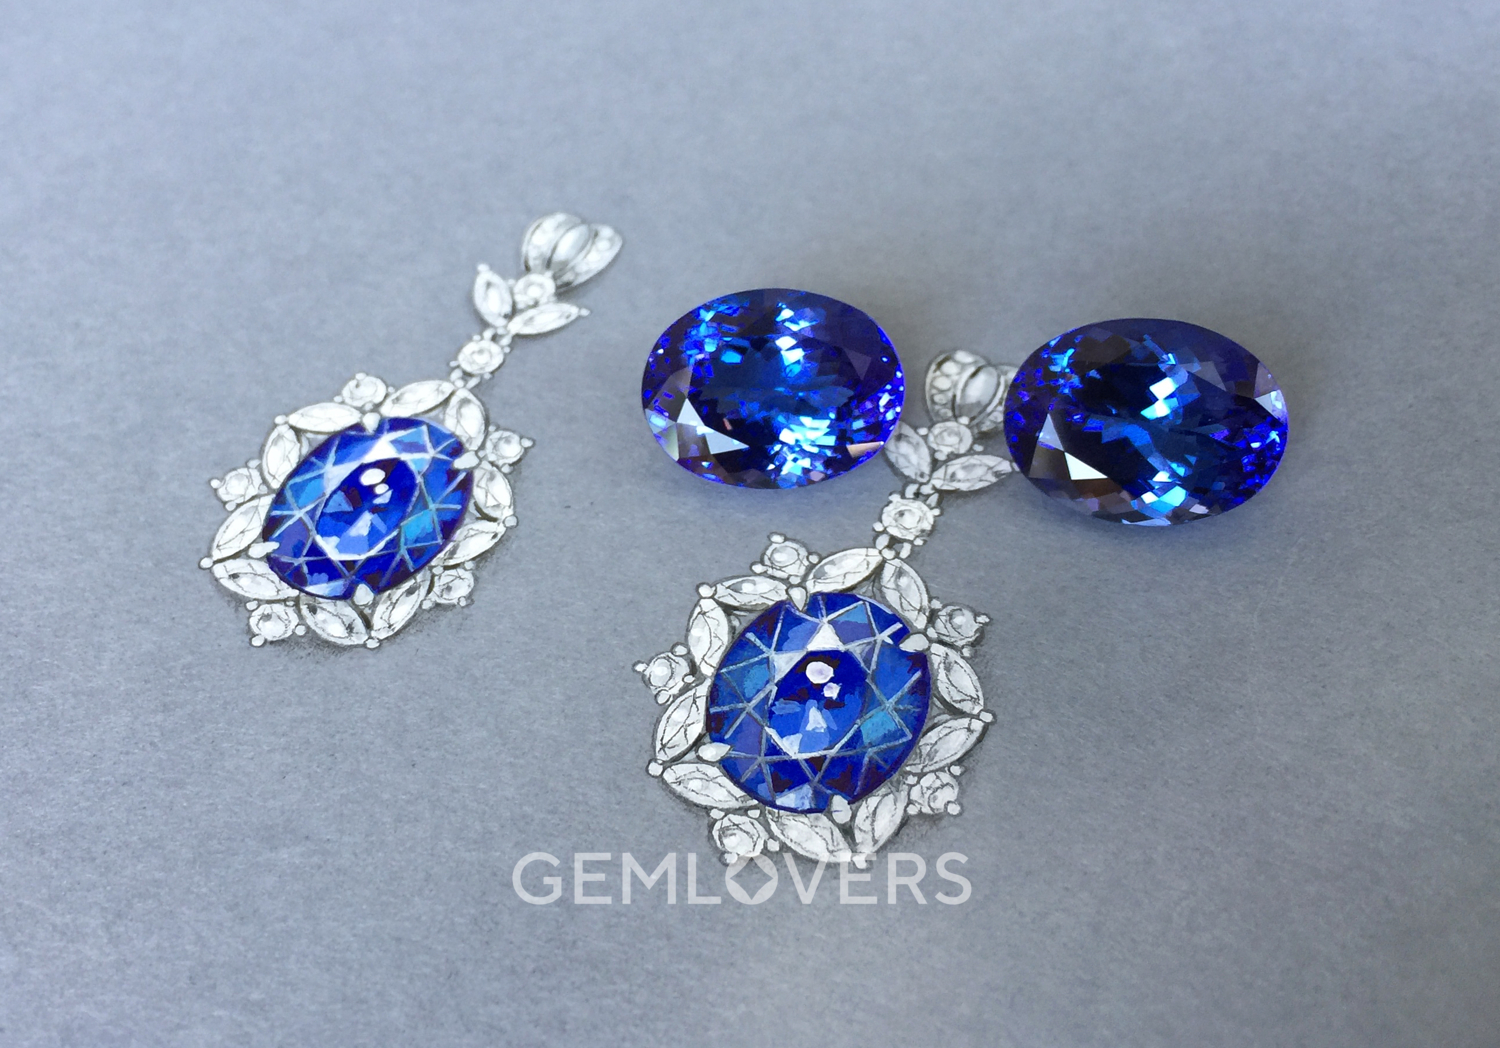 A pair of oval shaped tanzanites